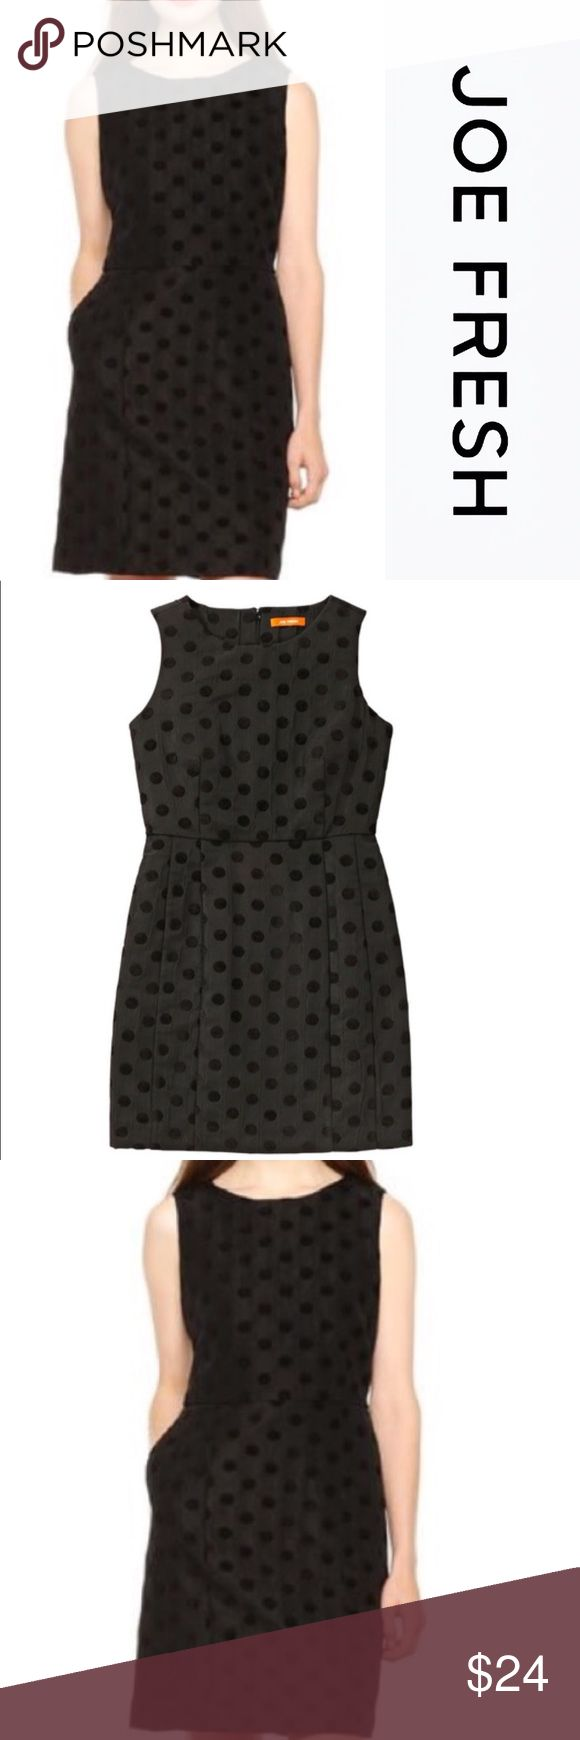 "NWT JOE FRESH RAYON POLKA DOT DRESS Perfect dress for a night out! Super easy to wear and to accessorize! Tone on tone, black, polka dot pattern throughout. Great quality, weighted. Approximately 36""L. Comes from a smoke free home. Bundle & save! Joe Fresh Dresses Midi"